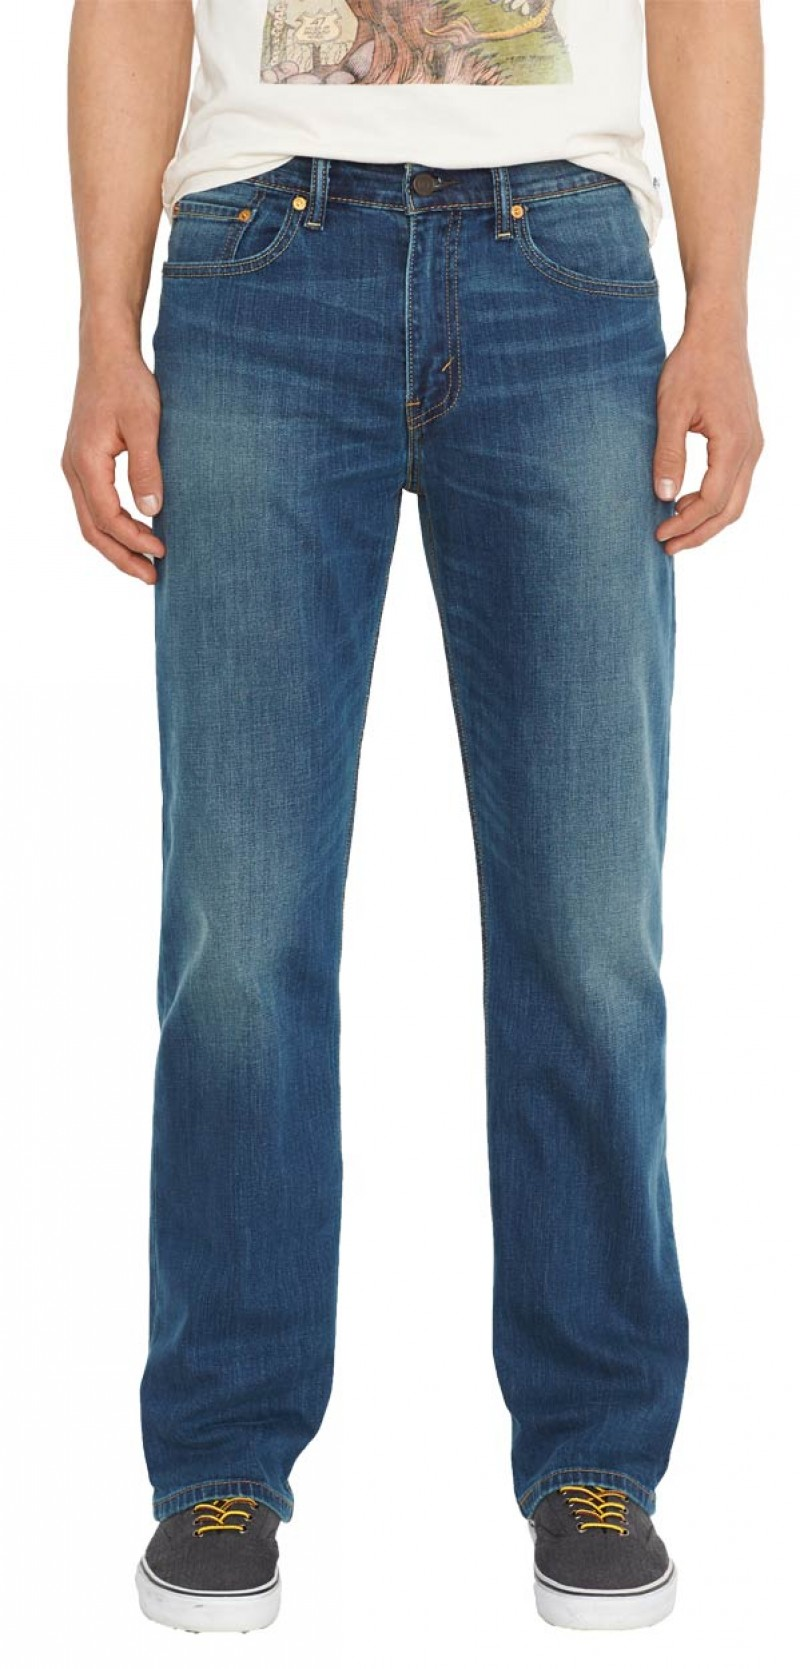 Levis 751 Jeans - Standart Fit - Brother Blue v